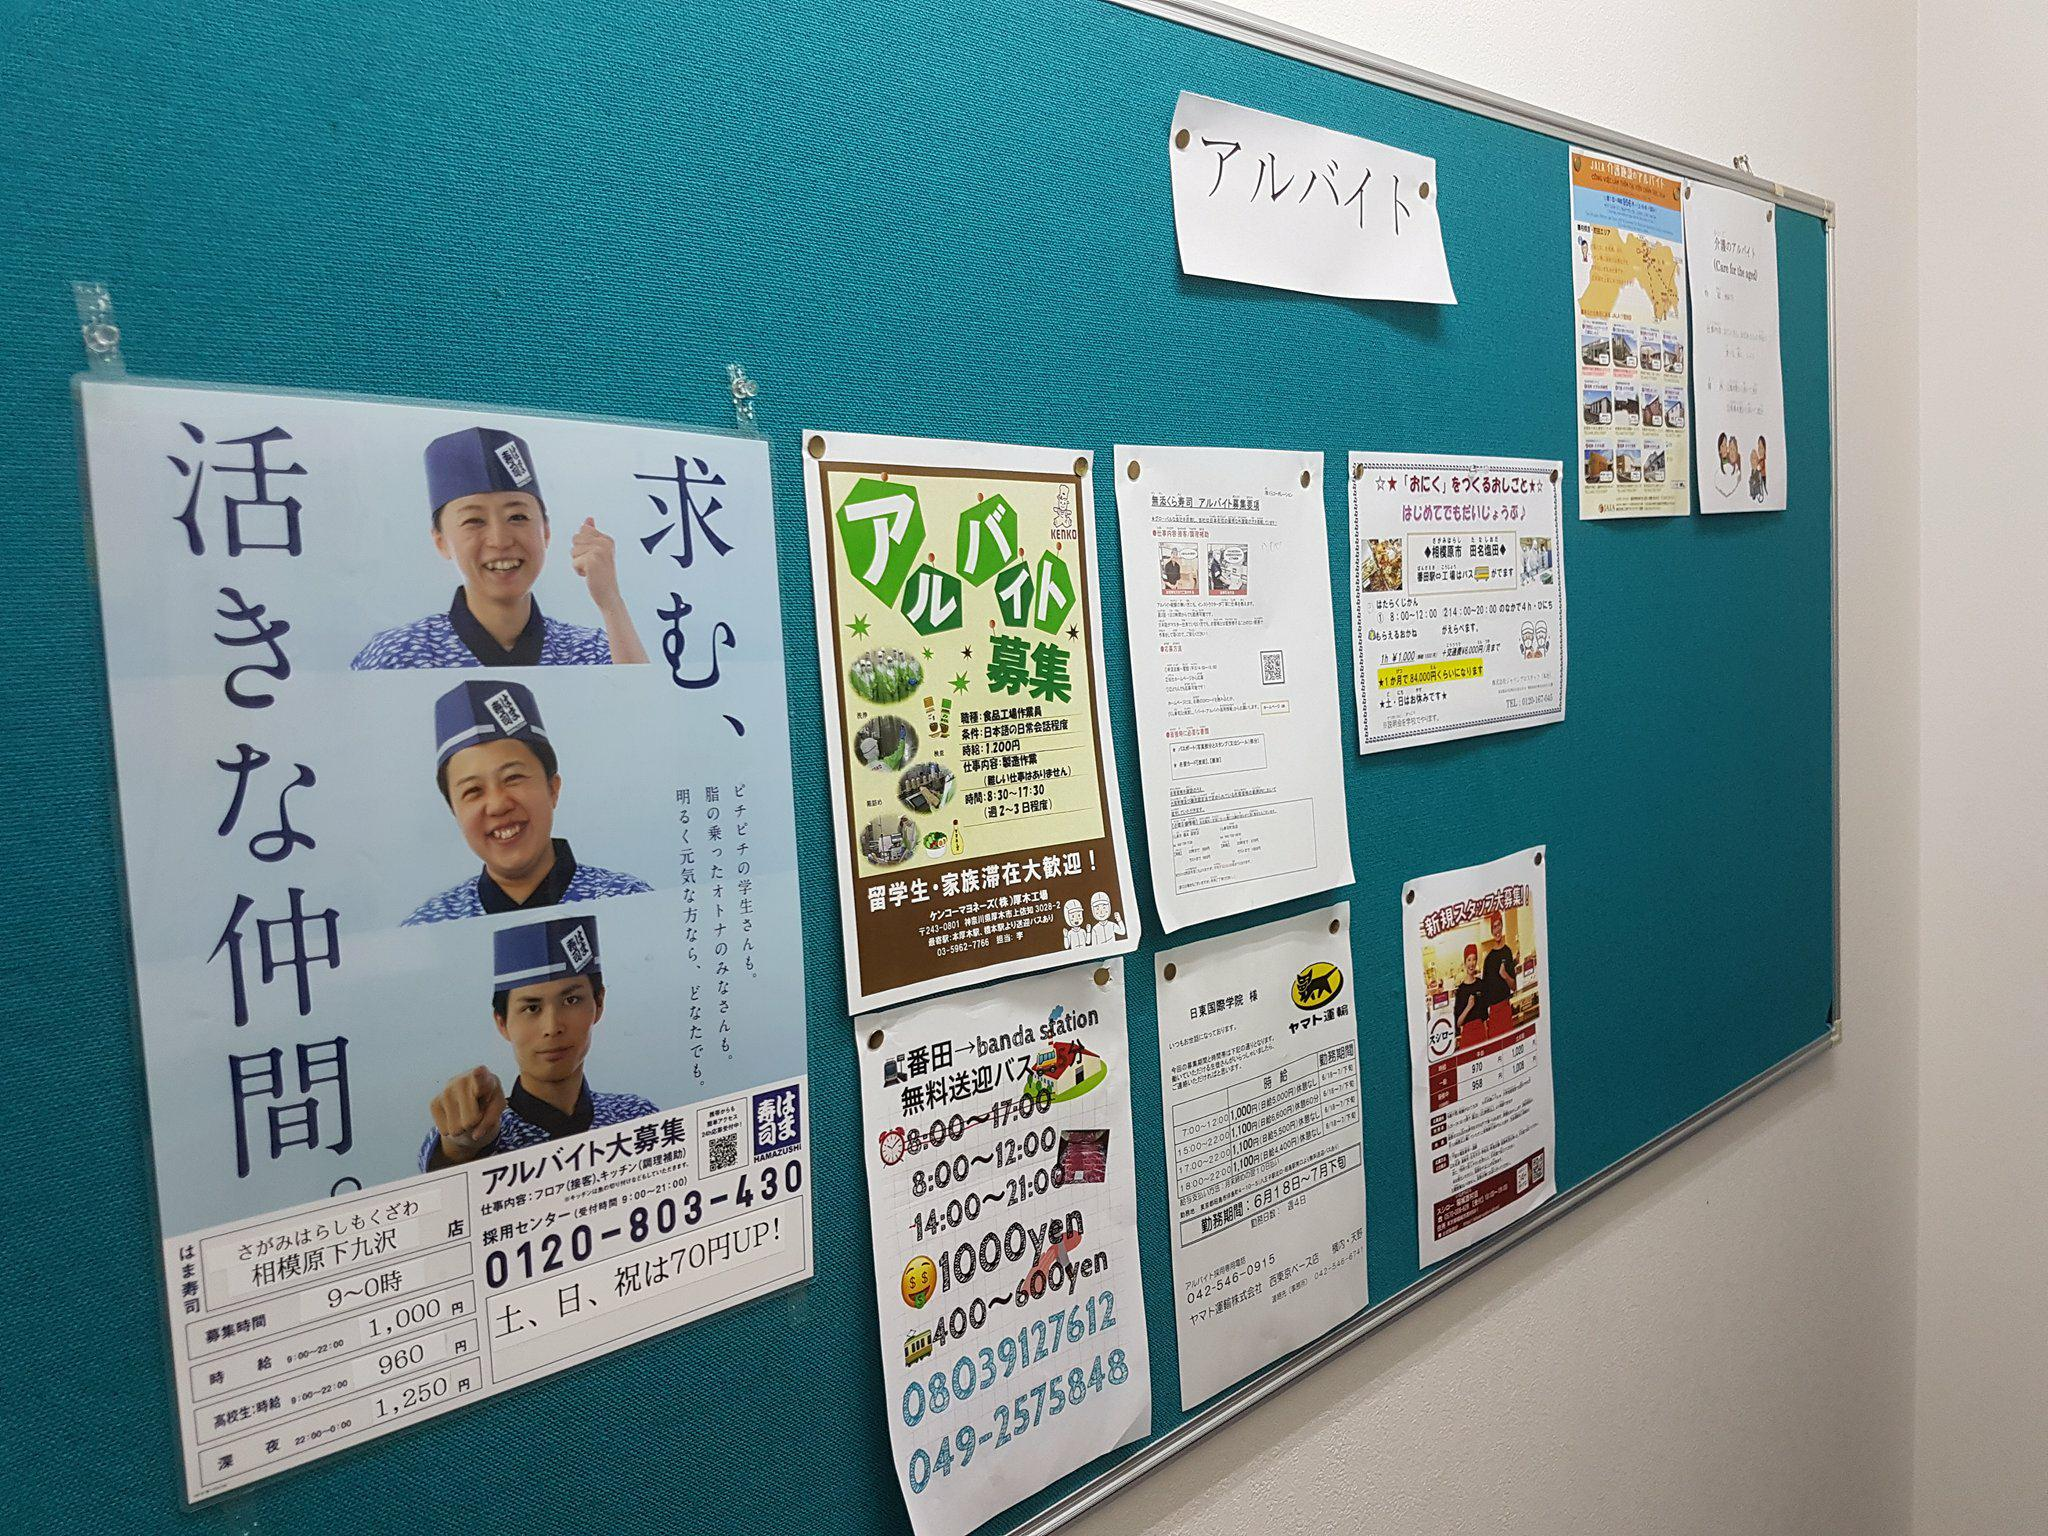 Poster board for part-time jobs. Companies come to the school giving presentations about working at their company. Schools introduce for free and help.